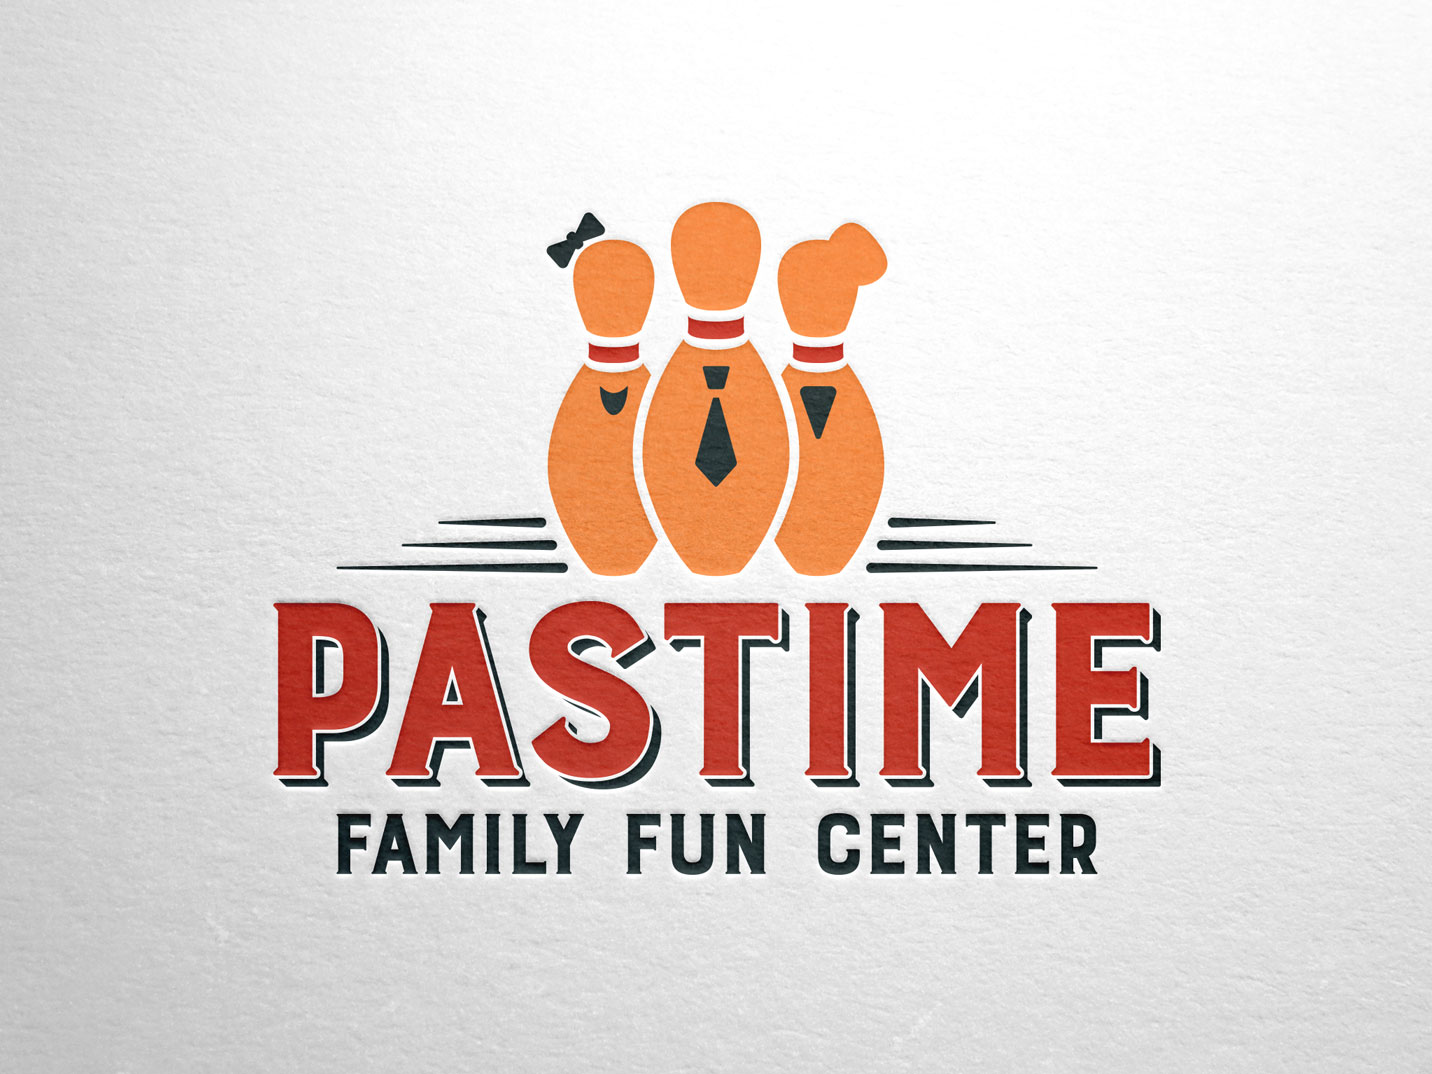 Pastime Family Fun Center Logo